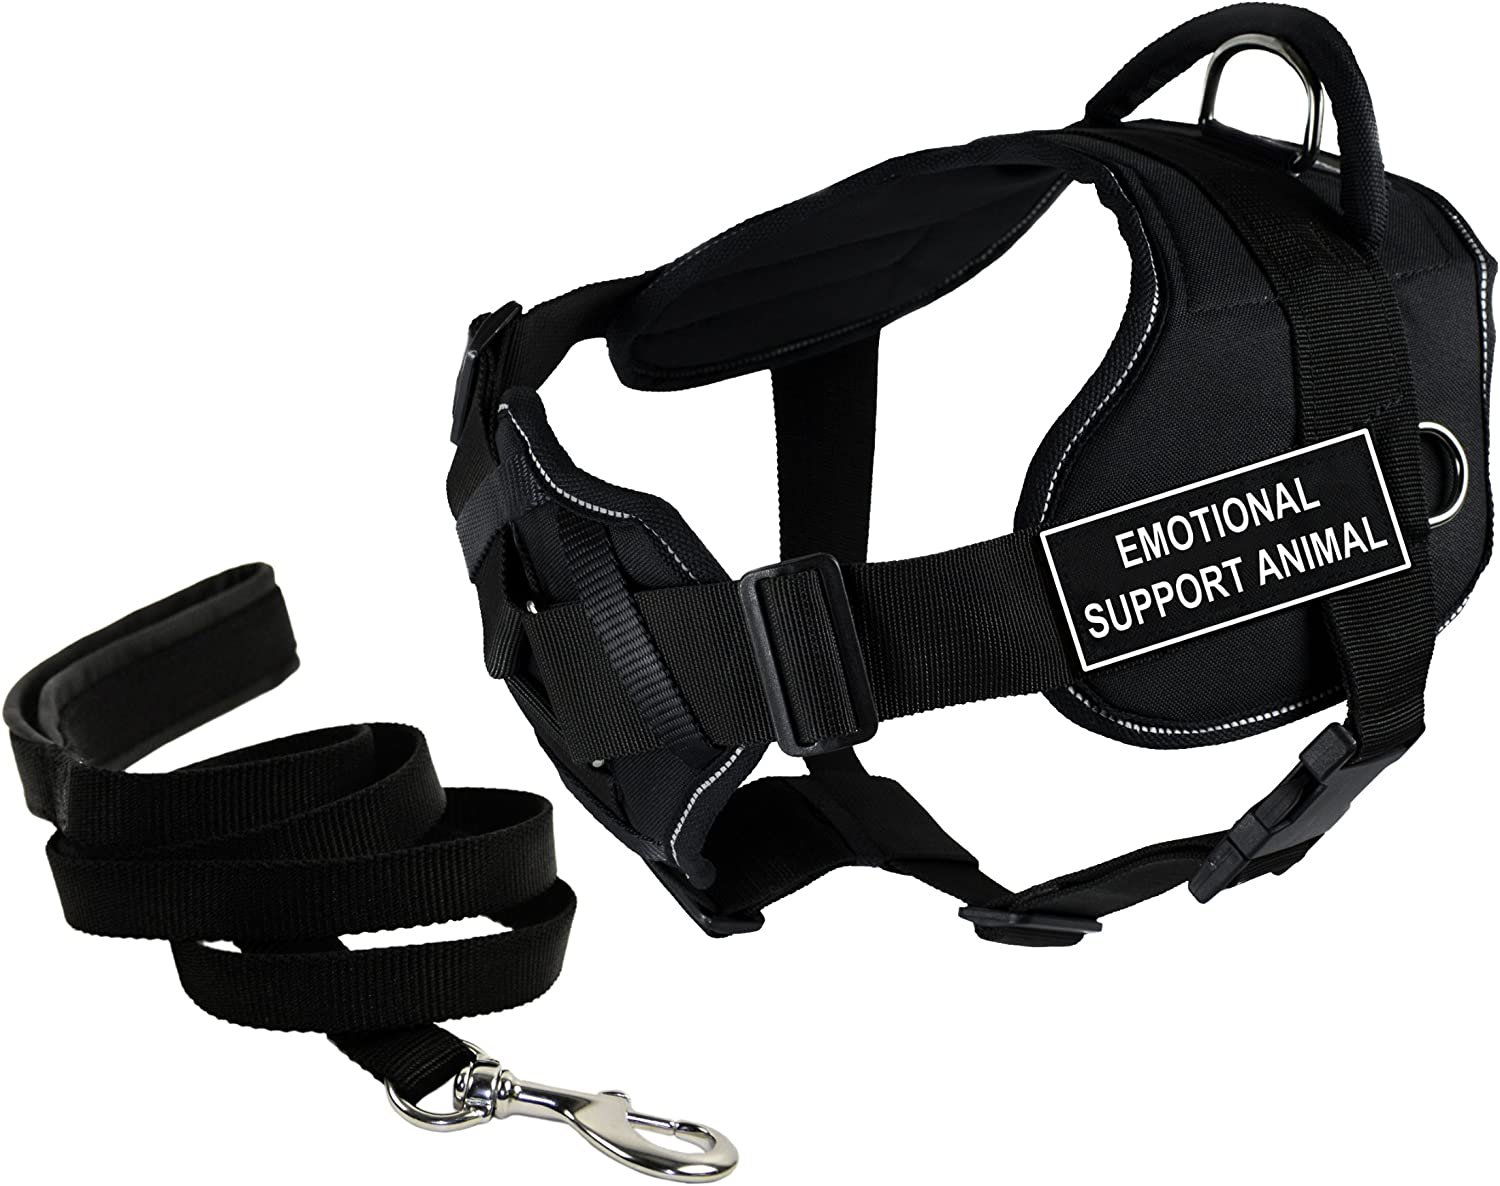 Dean & Tyler's DT Fun Chest Support EMOTIONAL SUPPORT ANIMAL Harness with Reflective Trim, Medium, and 6 ft Padded Puppy Leash.